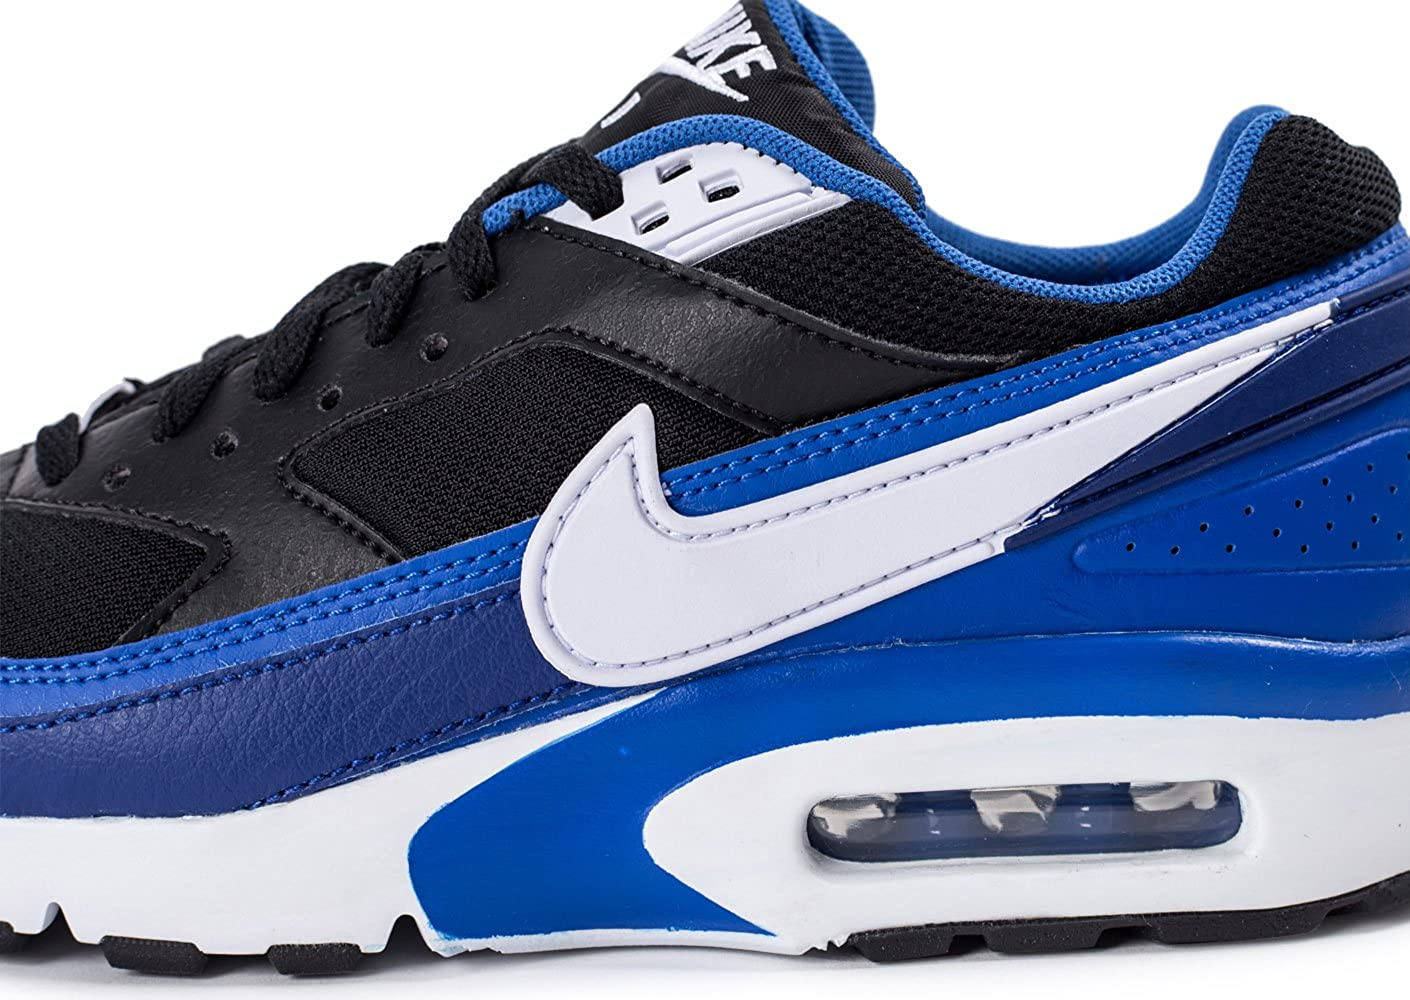 d353ab58e5 Nike Air Max Bw (Gs), Boy's Running Shoes, Black (black/white-game - deep  royal blue), 4 UK (36.5 EU): Amazon.co.uk: Shoes & Bags